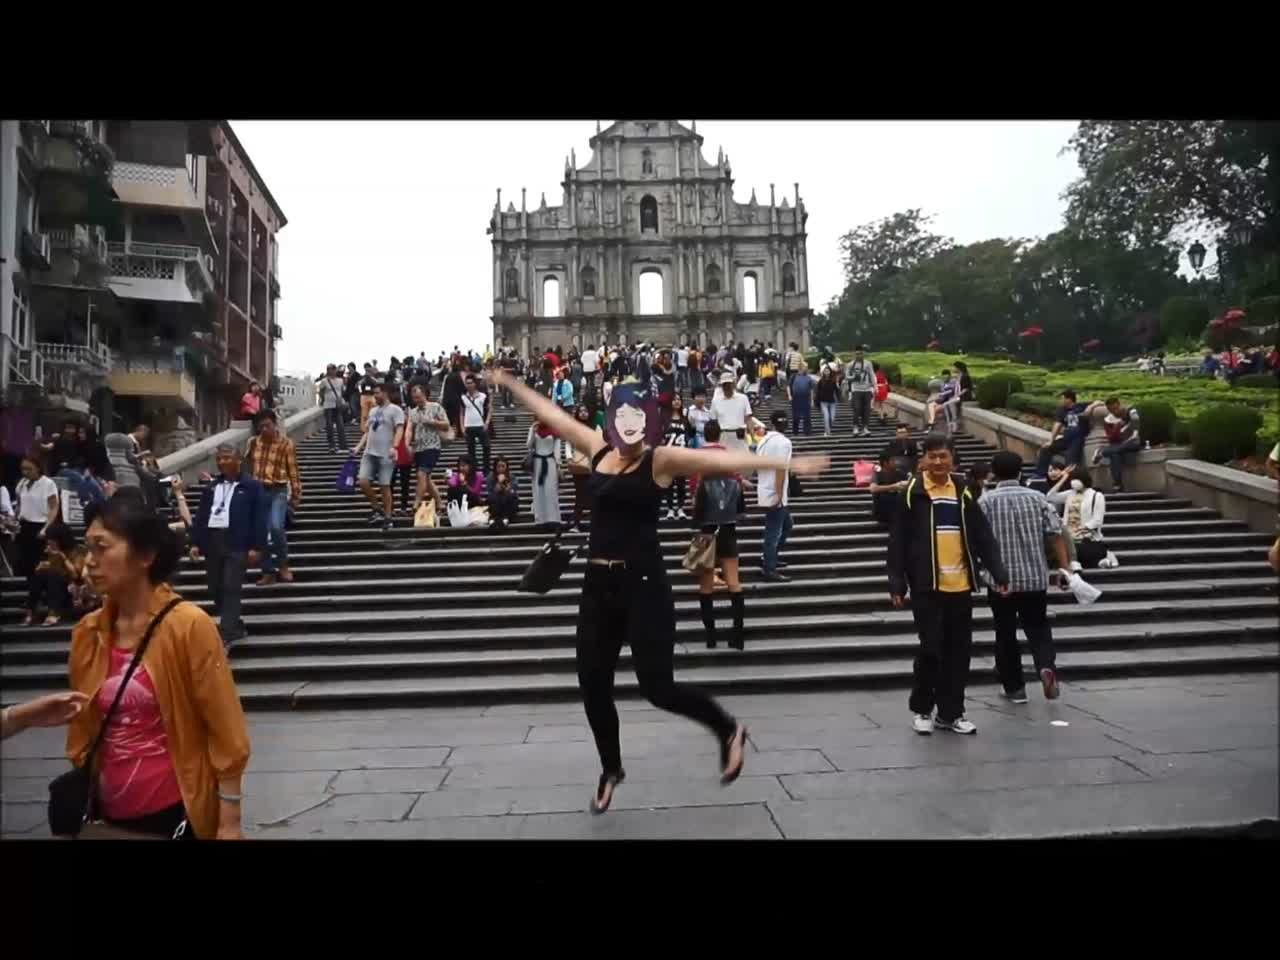 CheapTickets.sg 48 hours in Macau Video Montage